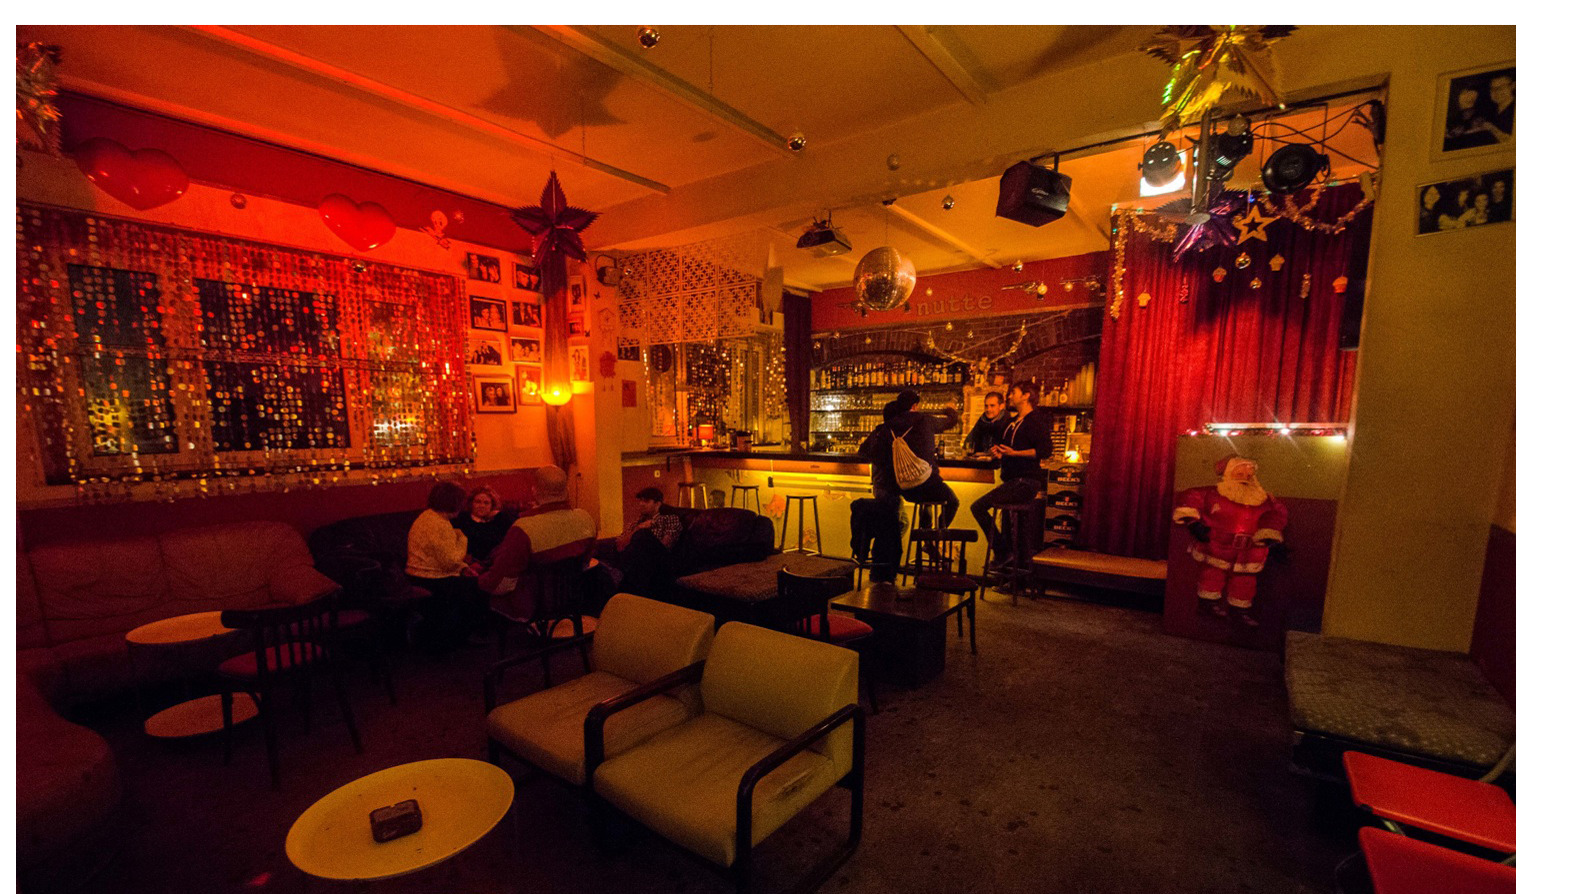 Living Möbel Berlin Lgbtq Berlin The Very Best Gay Bars Clubs And Saunas